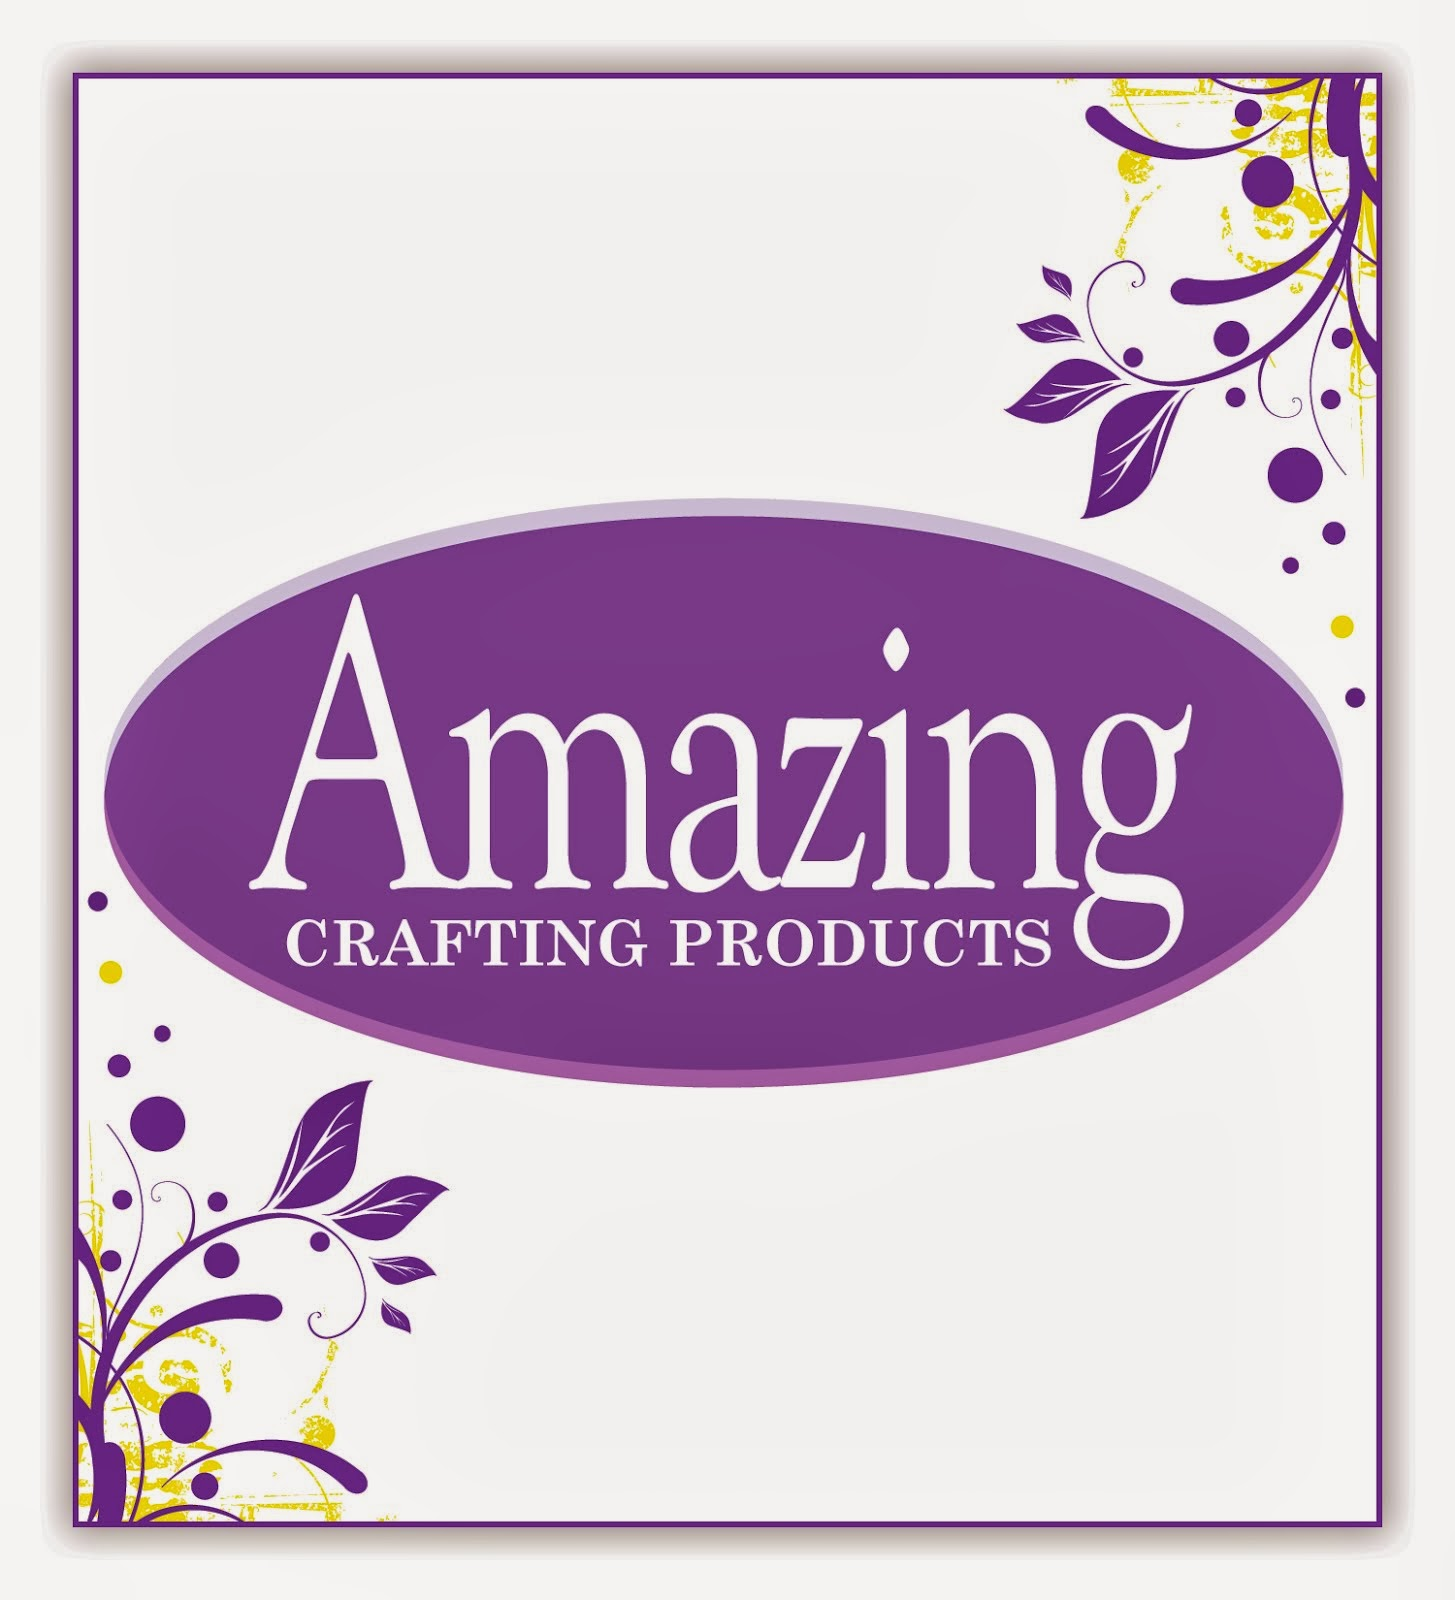 Welcoming Amazing Crafting Products to our world of creating art